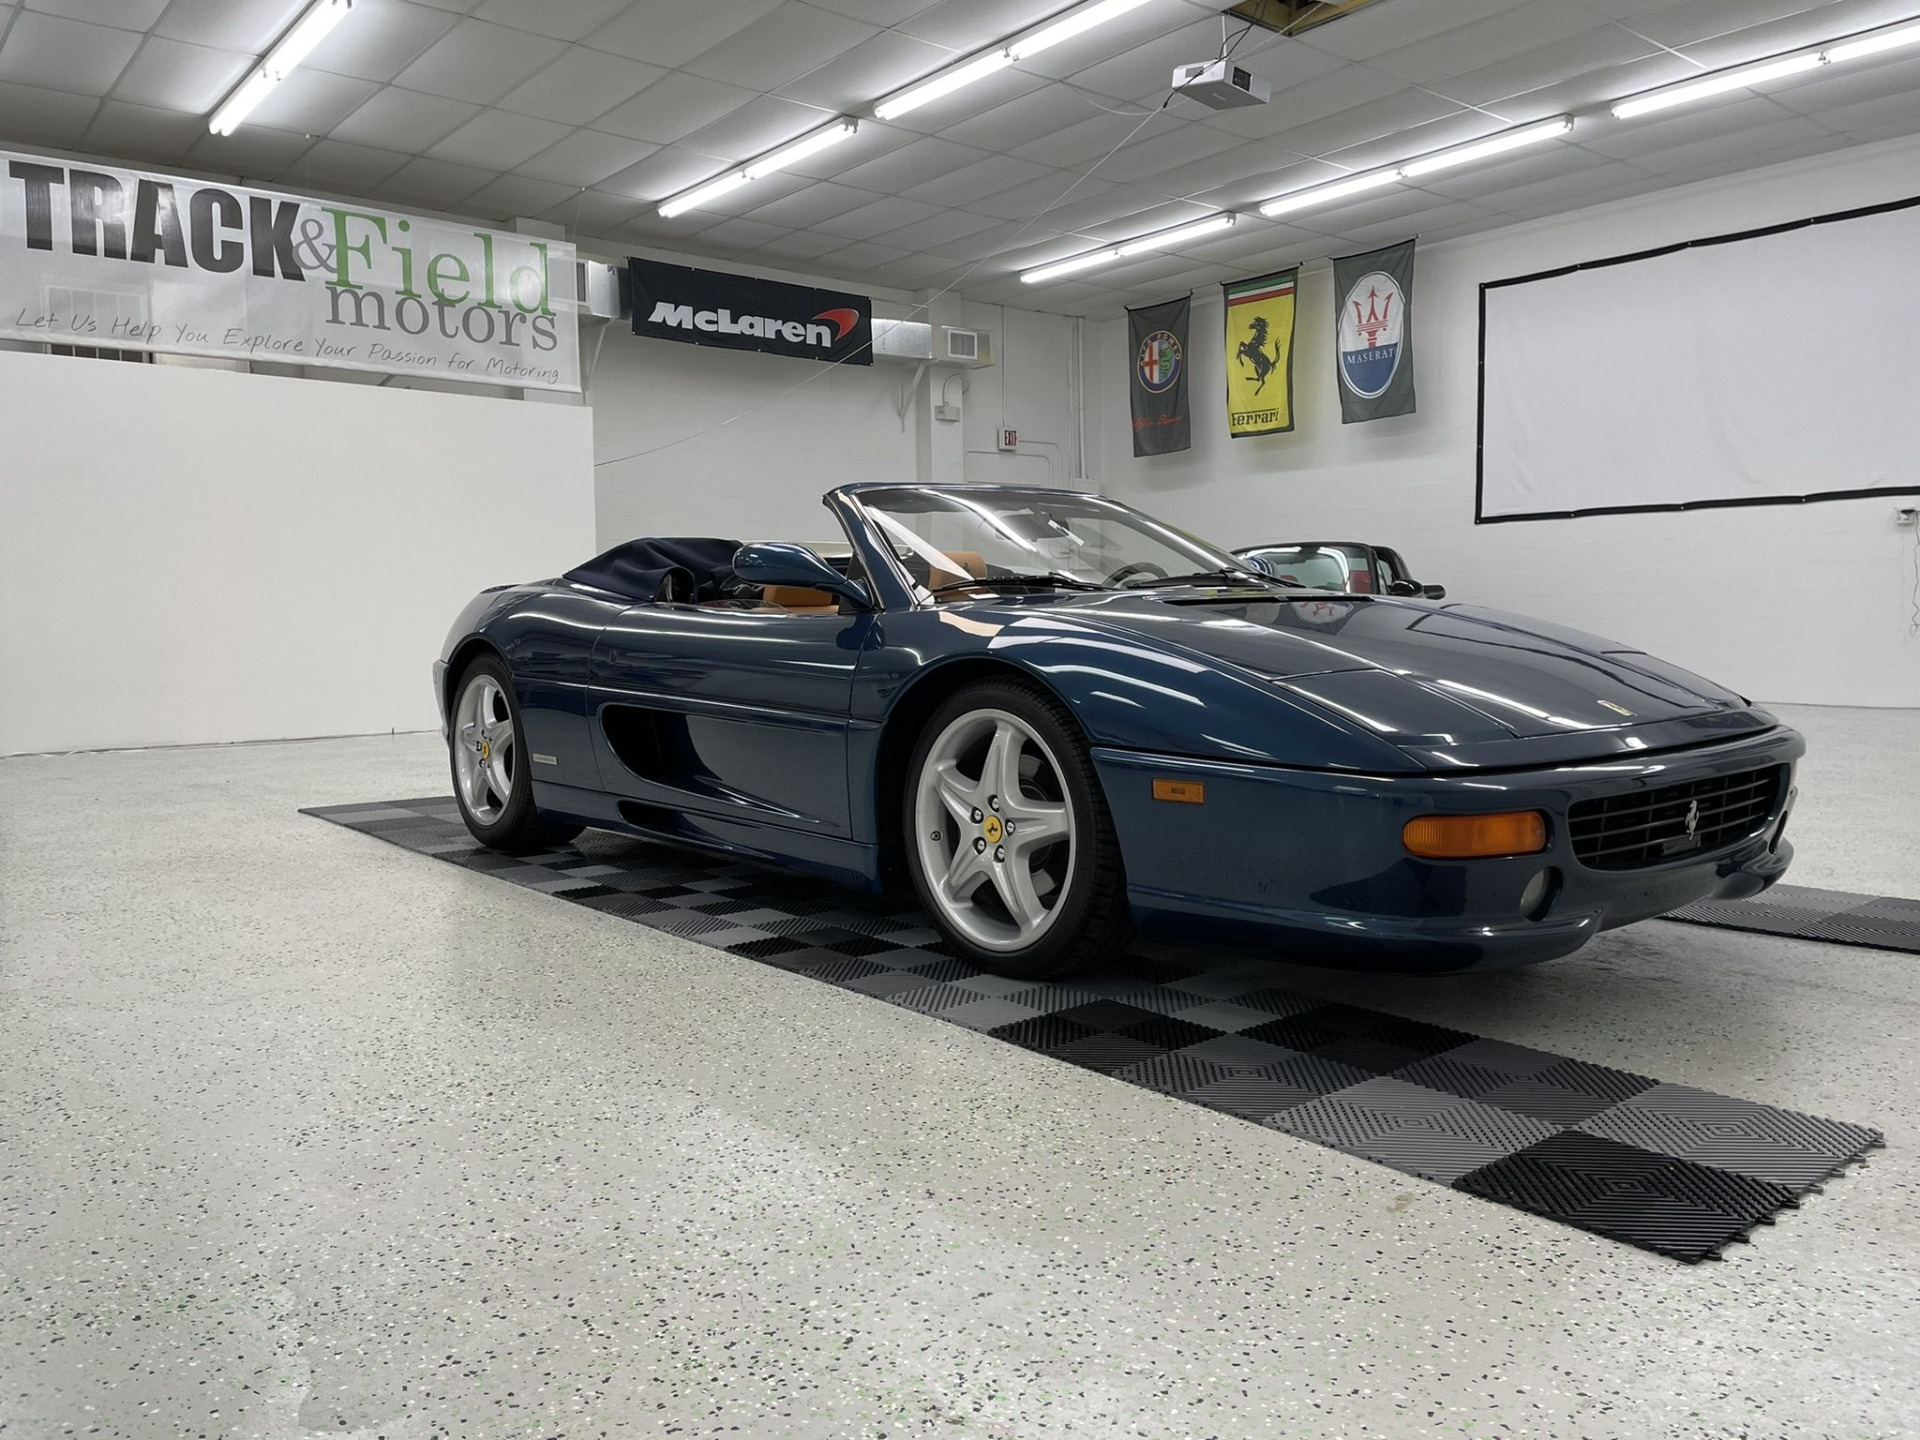 Used 1998 FERRARI 355 SPIDER for sale $79,997 at Track and Field Motors in Safety Harbor FL